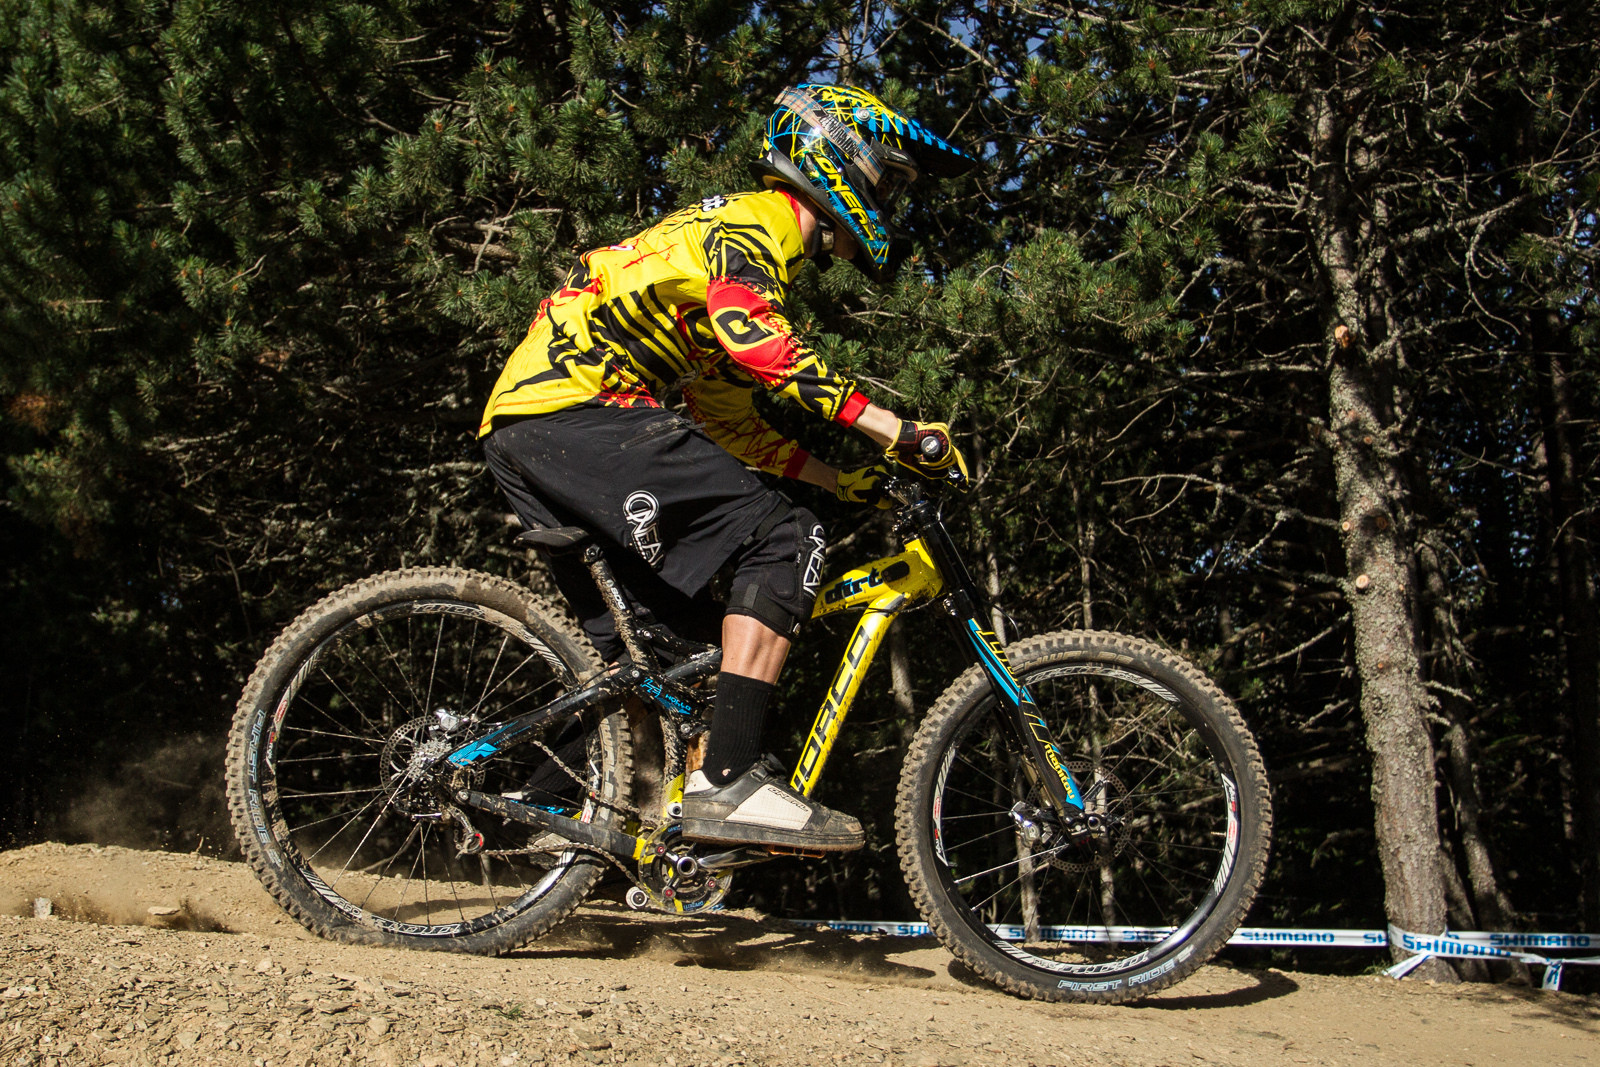 Norco 27.5 DH G-Out at Andorra World Cup - G-Out Project: 2013 Andorra World Cup - Mountain Biking Pictures - Vital MTB